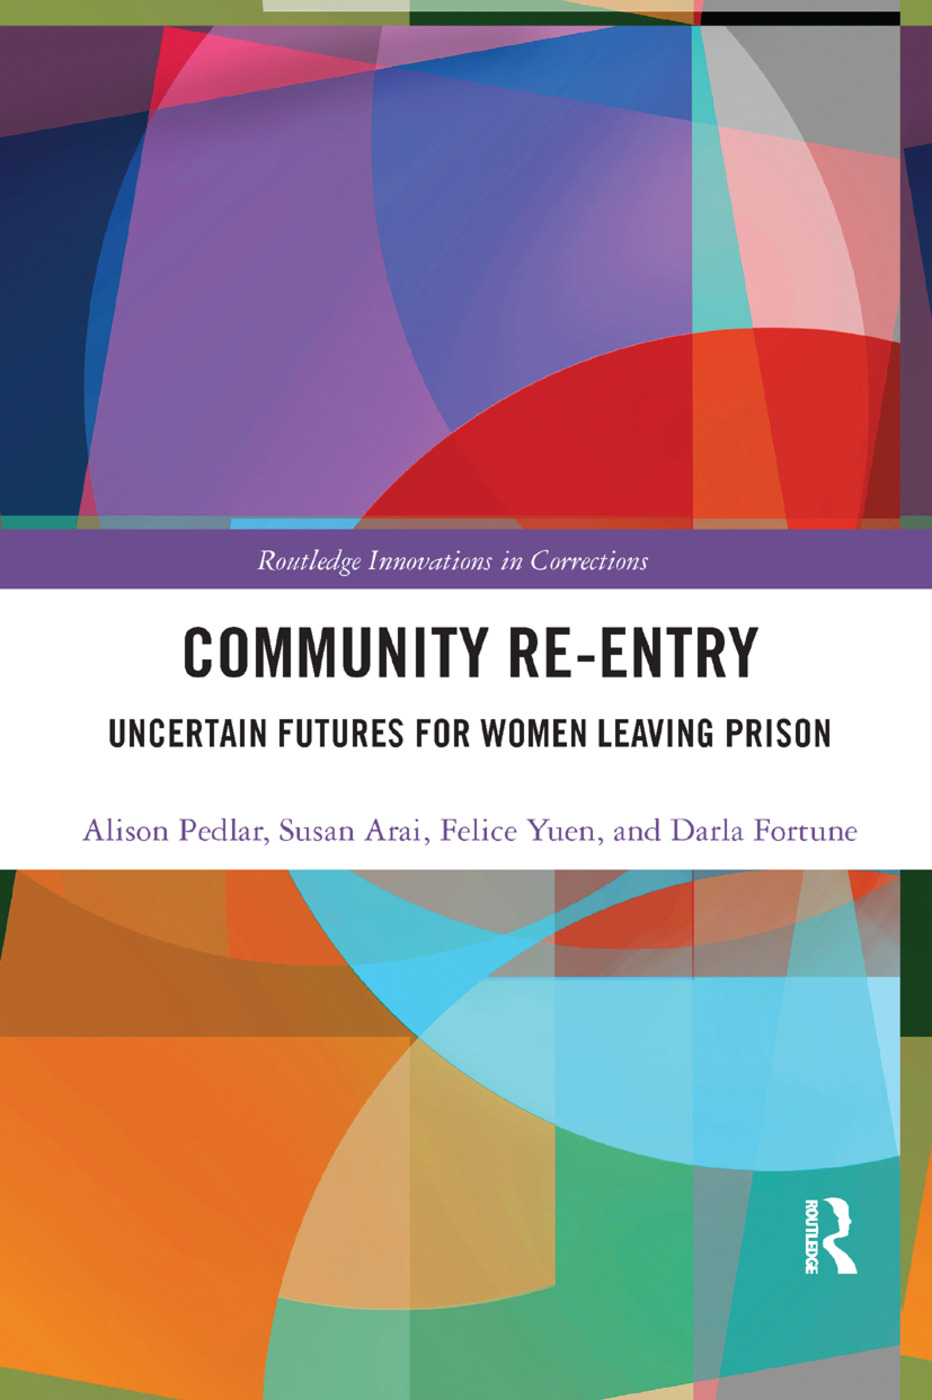 Community Re-Entry